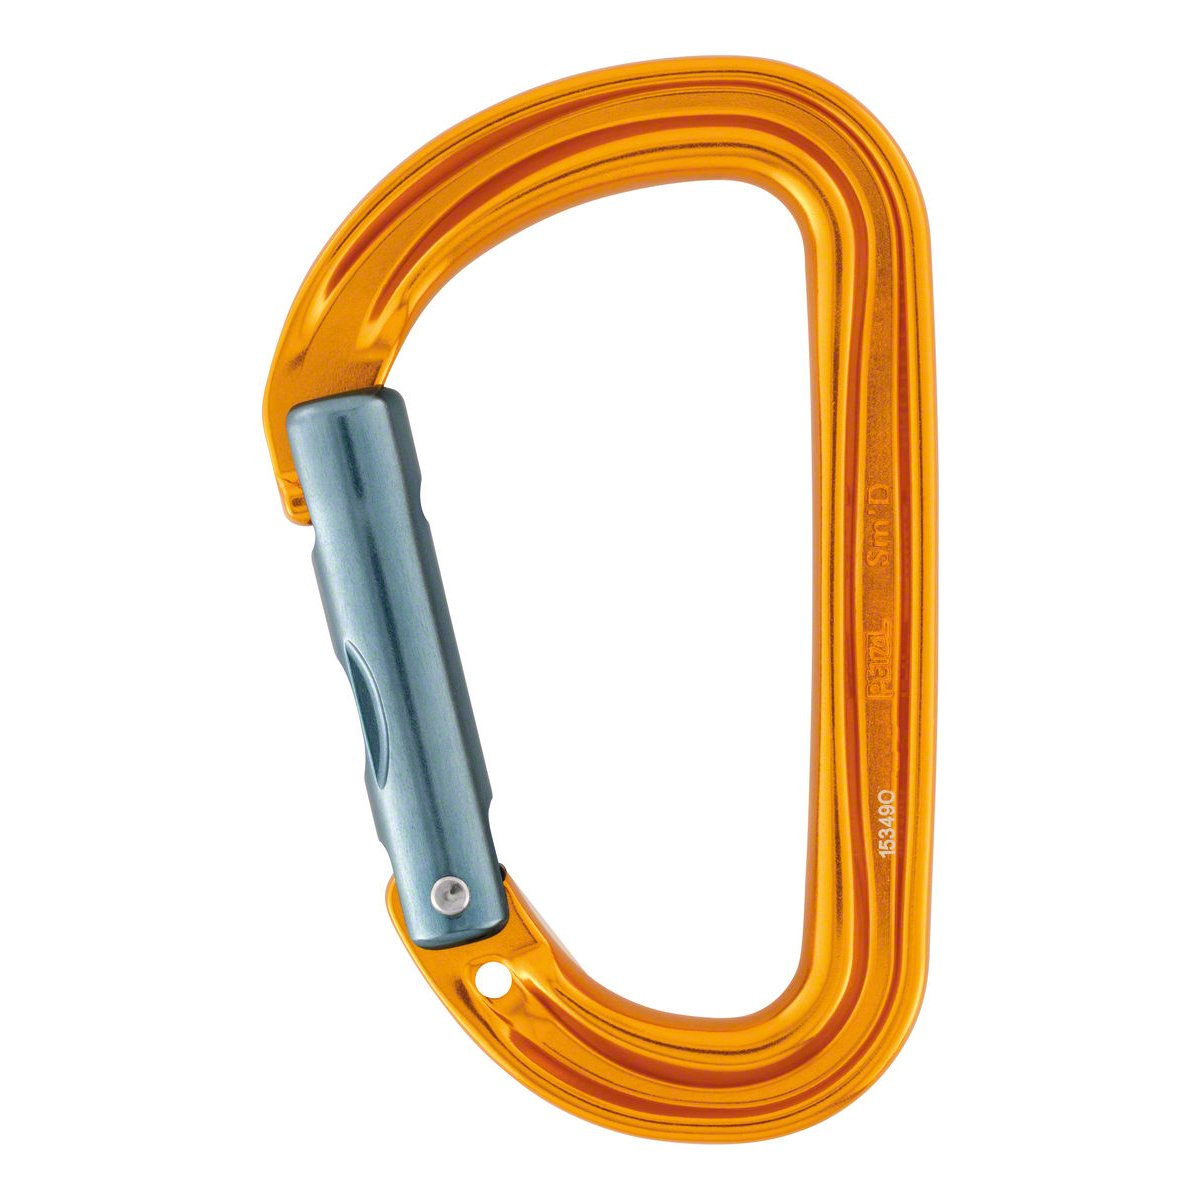 Petzl SM'D Wall H-frame Nonlocking Carabiner With Tethering Hole